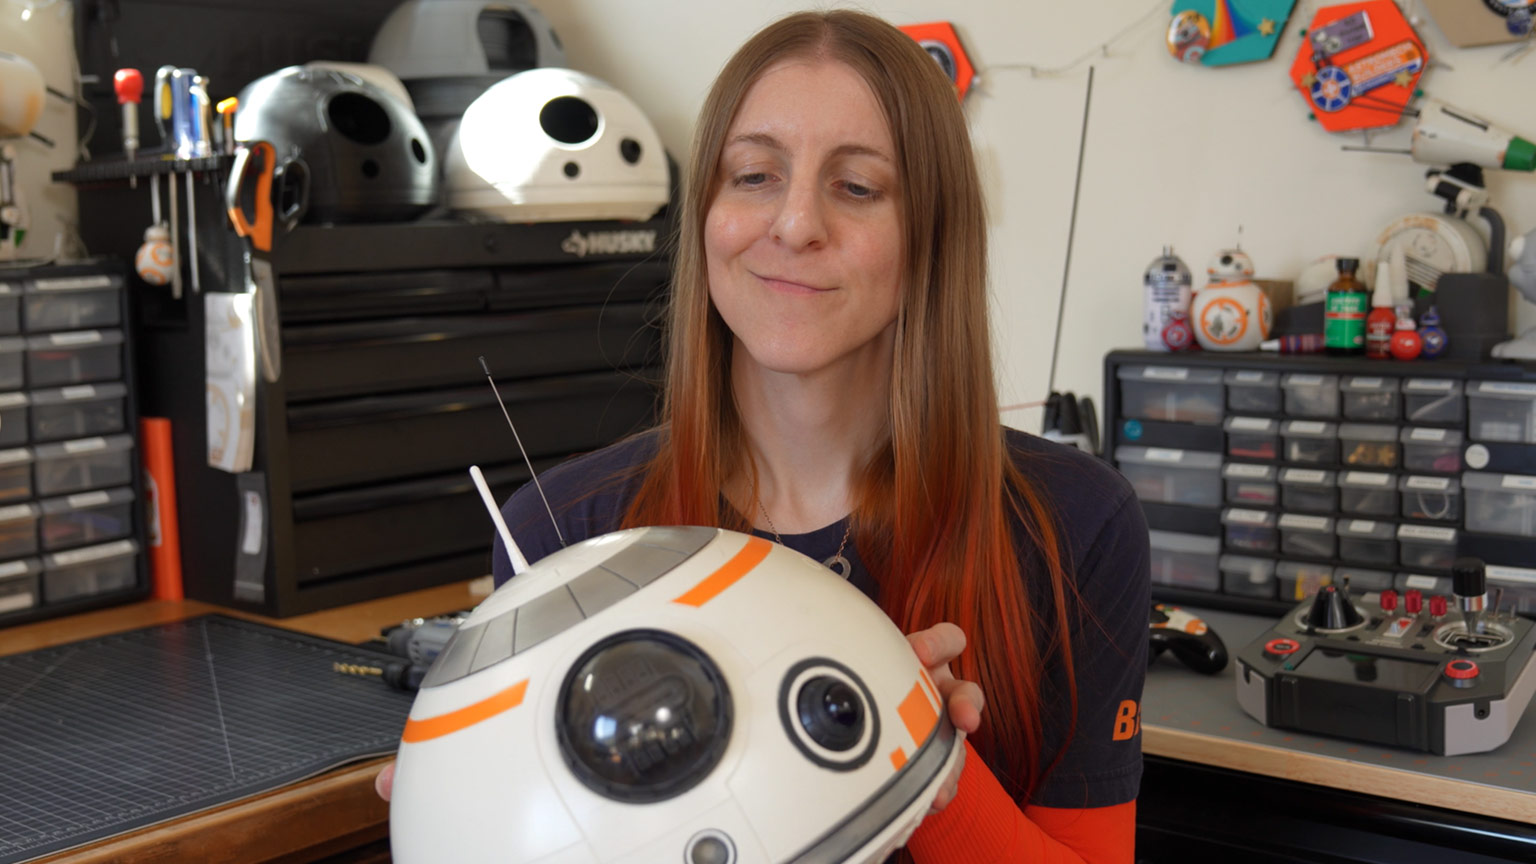 Psy DeLacy (Pixar technical director and droid builder) with BB-8